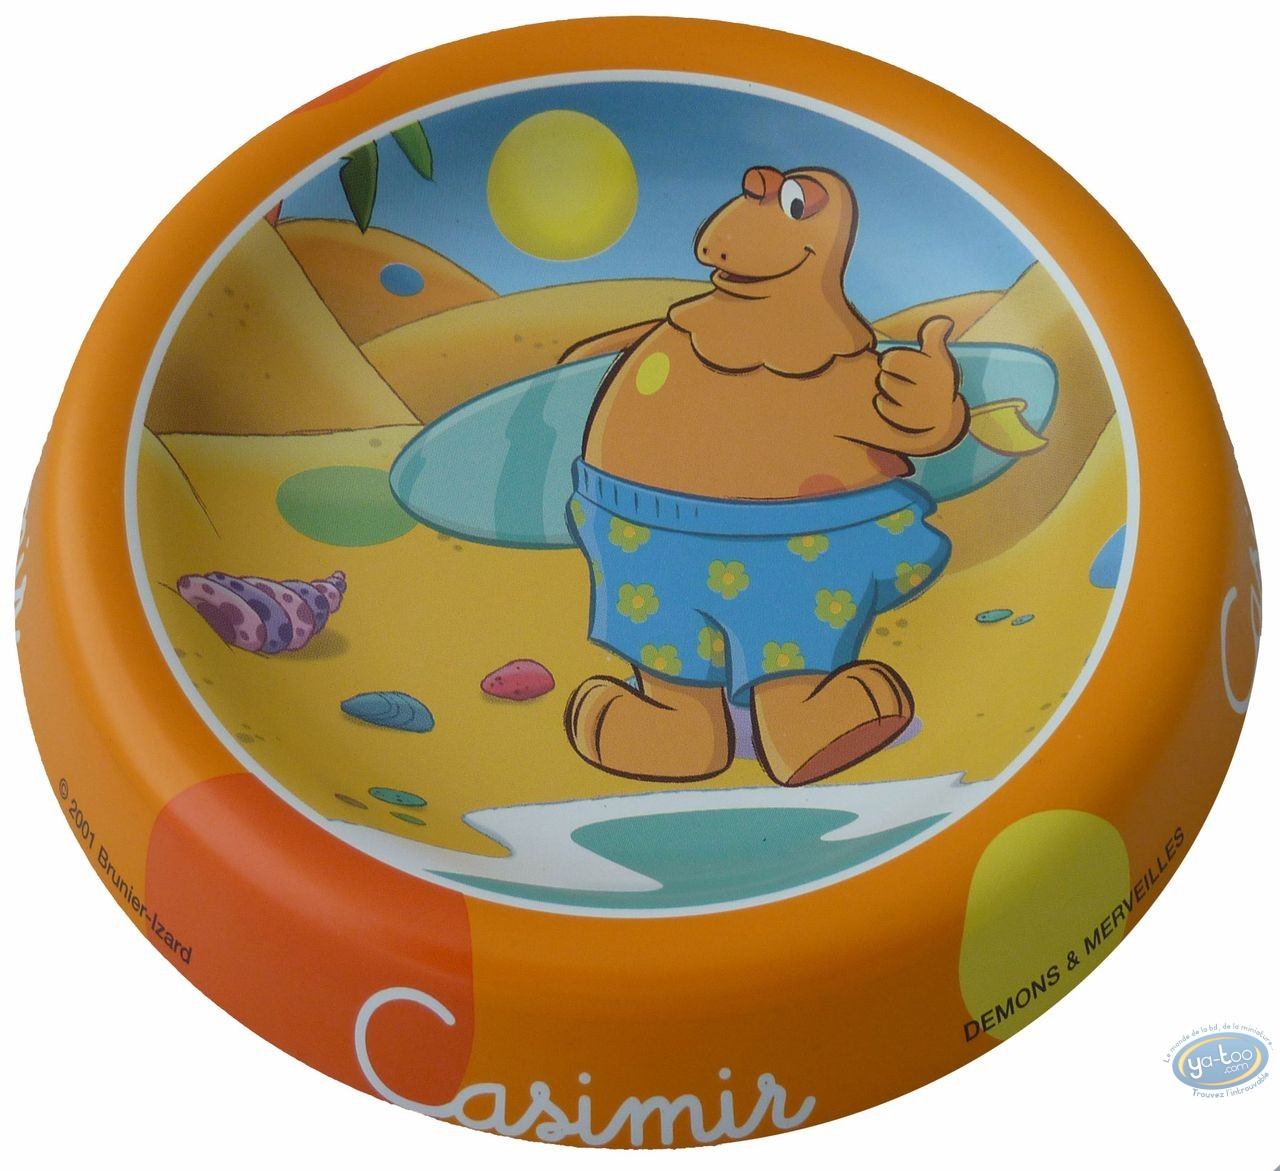 Tableware, Casimir : Pin tray, Casimir